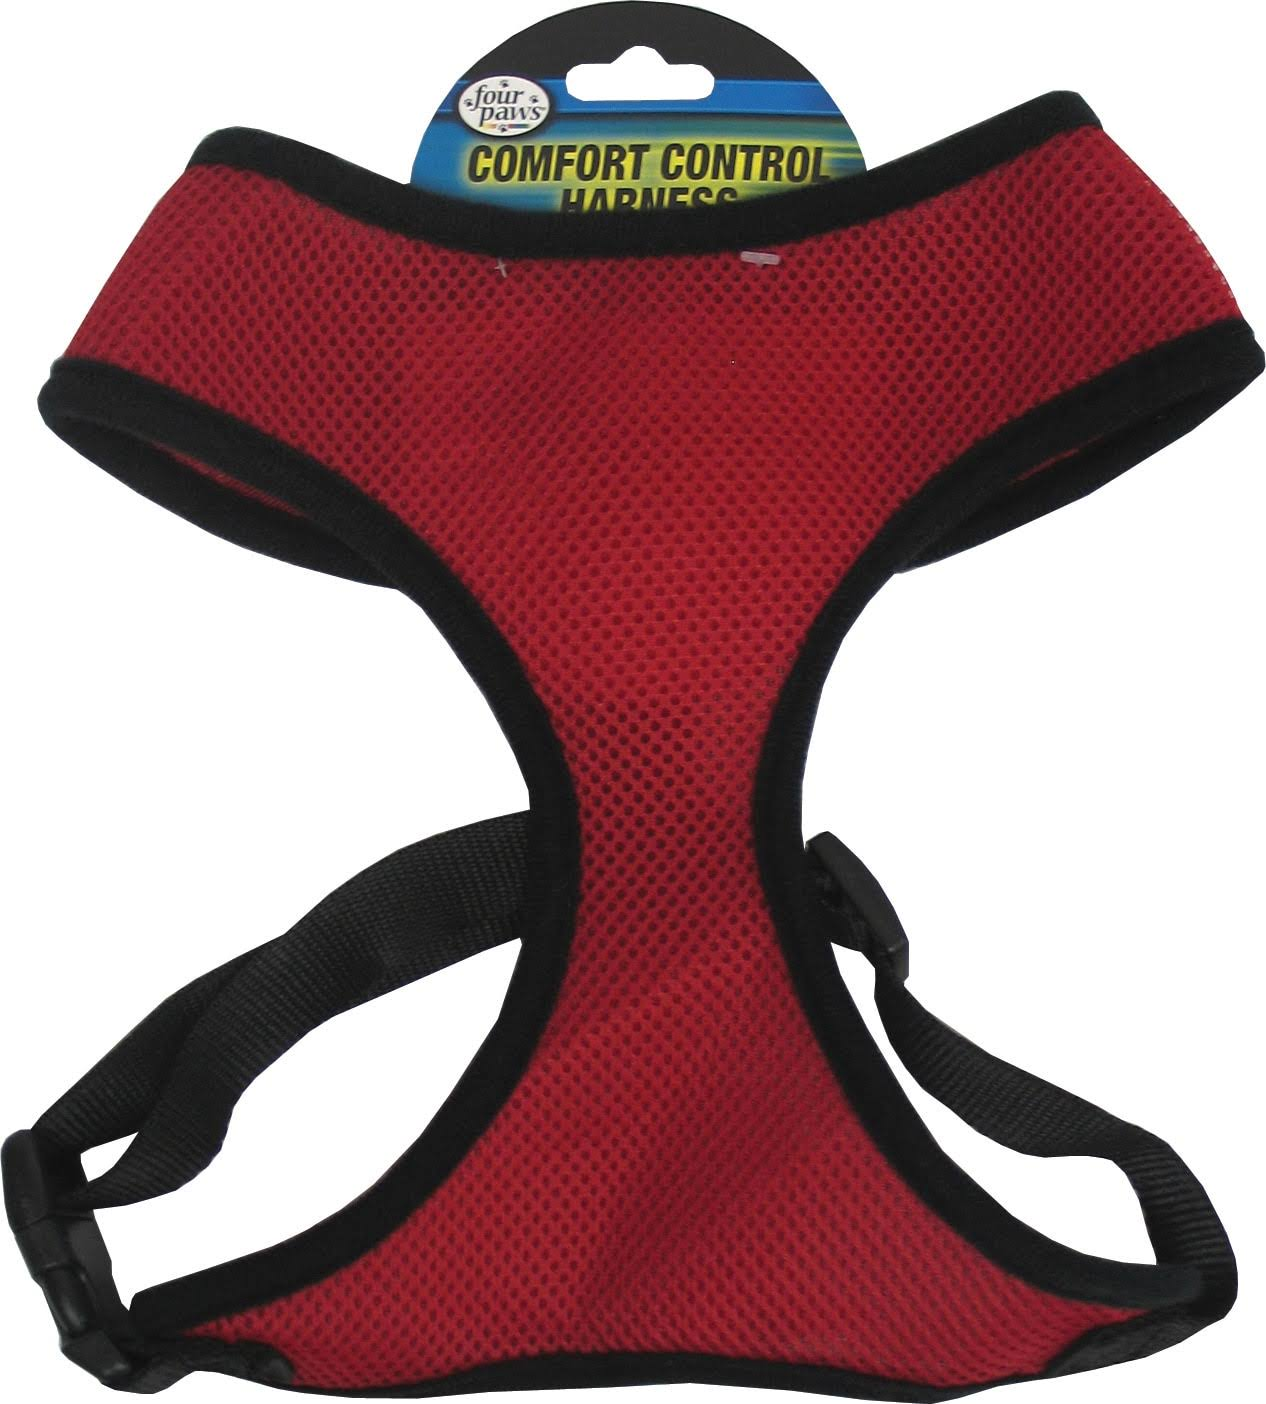 Four Paws 59185 Comfort Control Harness - Red, X-Large